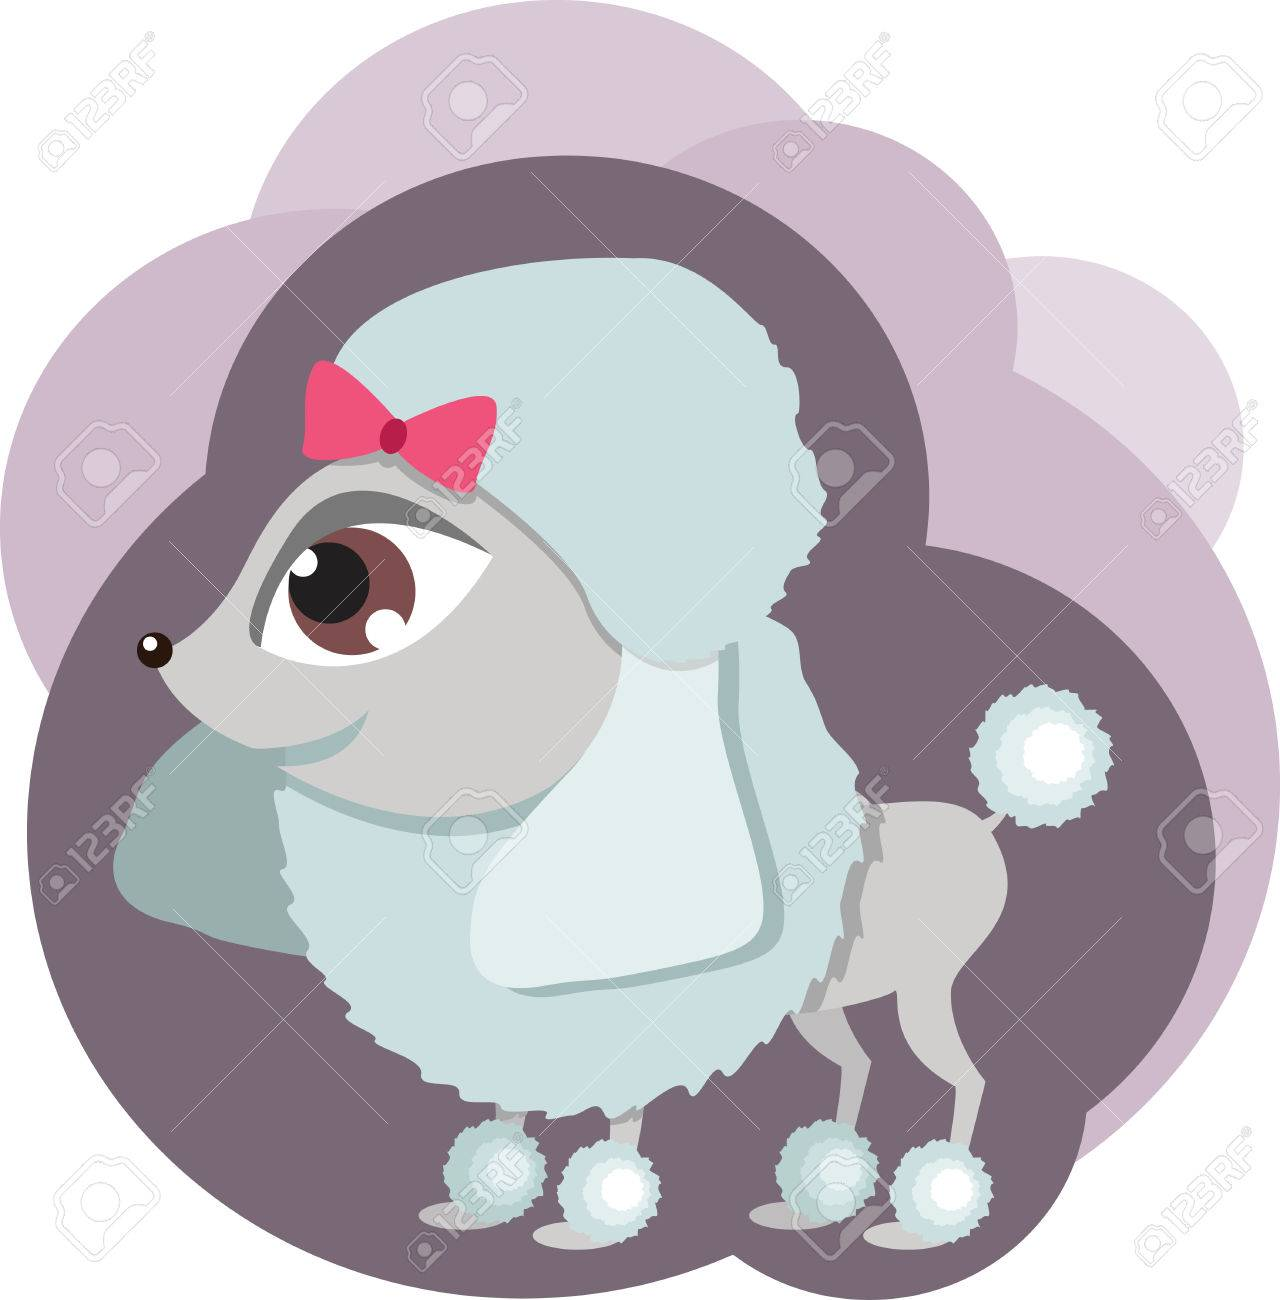 Poodle Stock Vector - 8329880